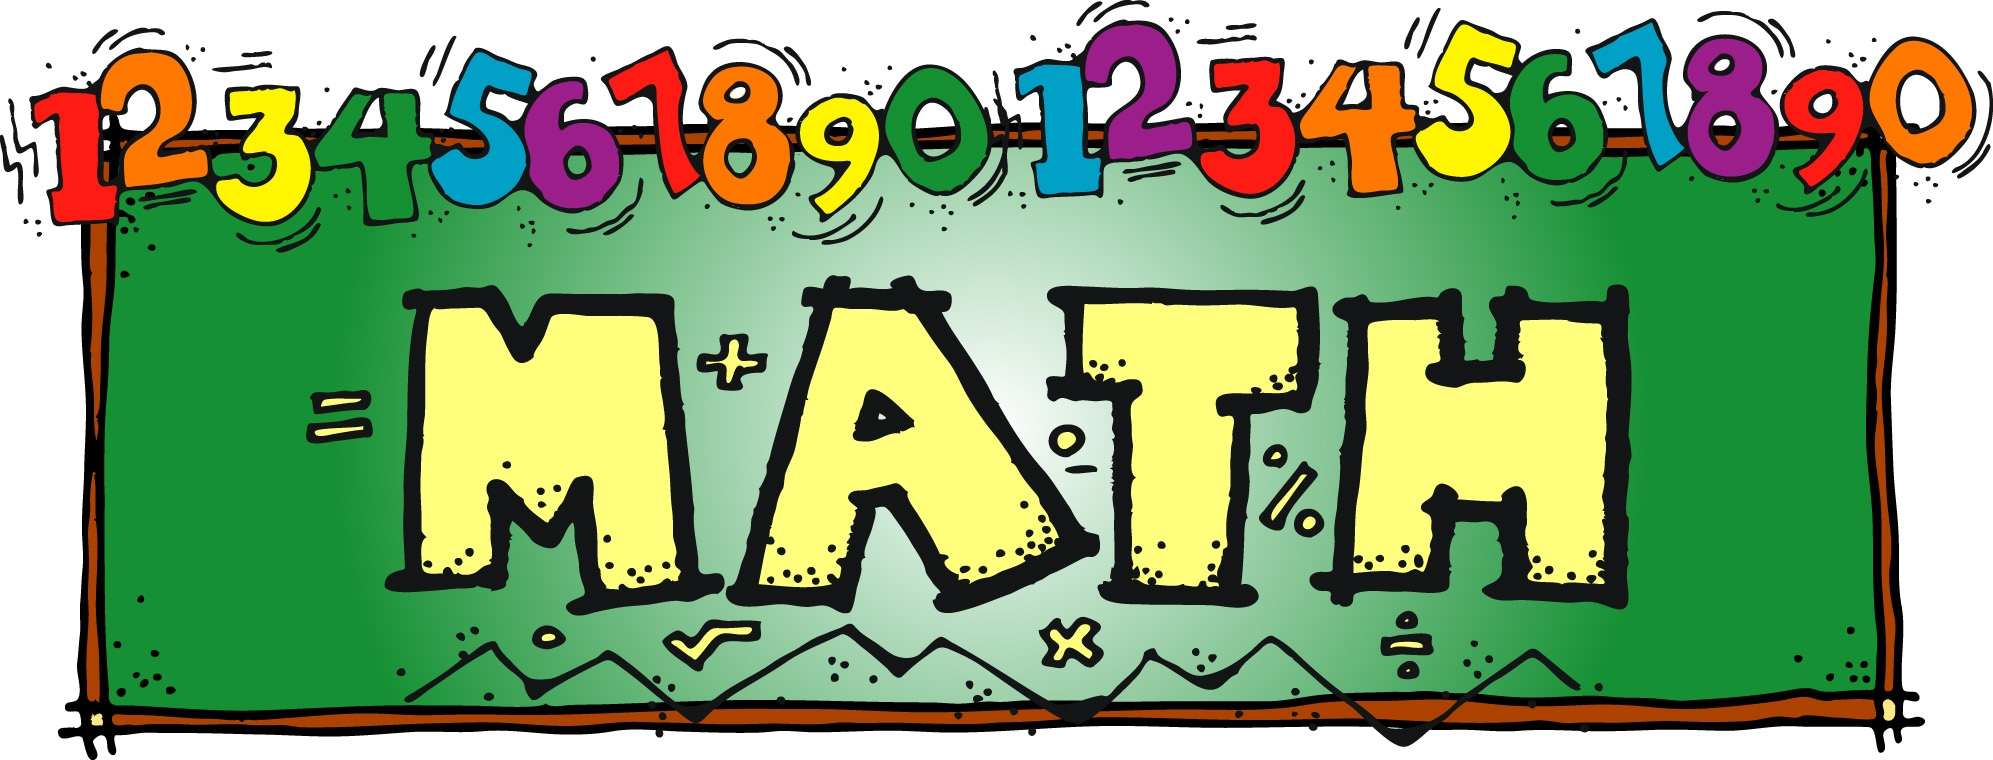 Math Clipart School.